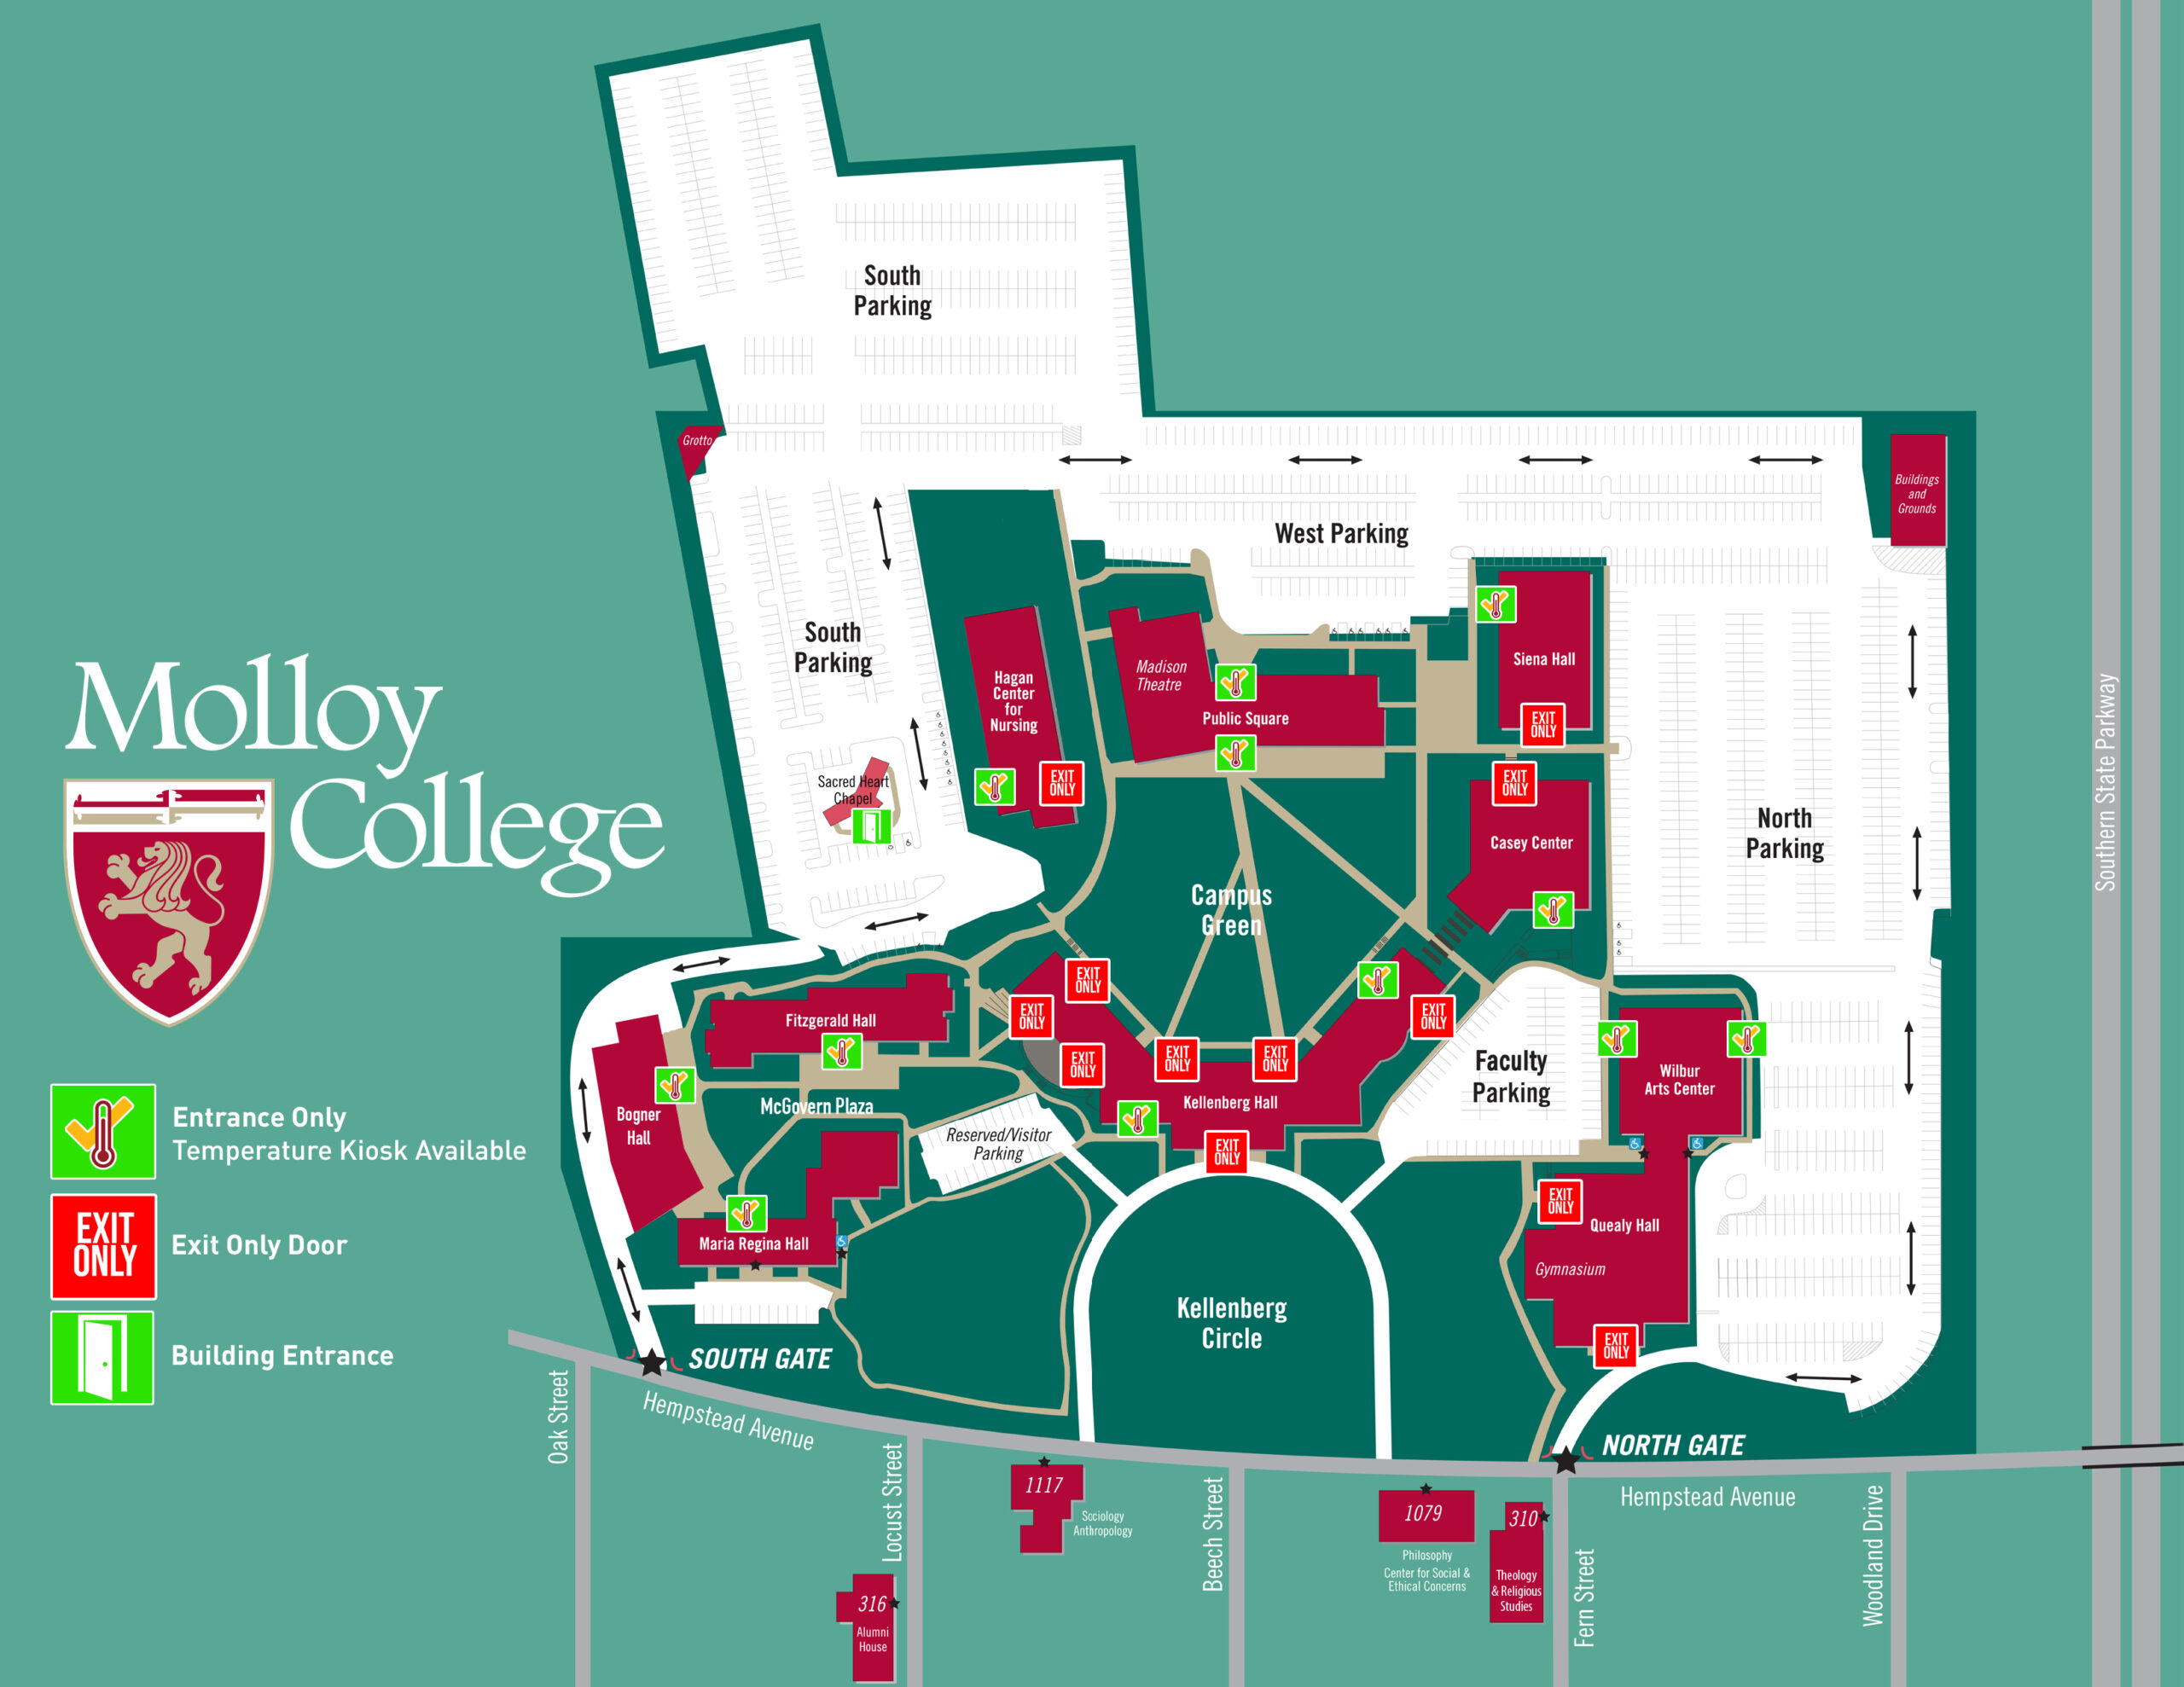 Molloy College: Student Resources